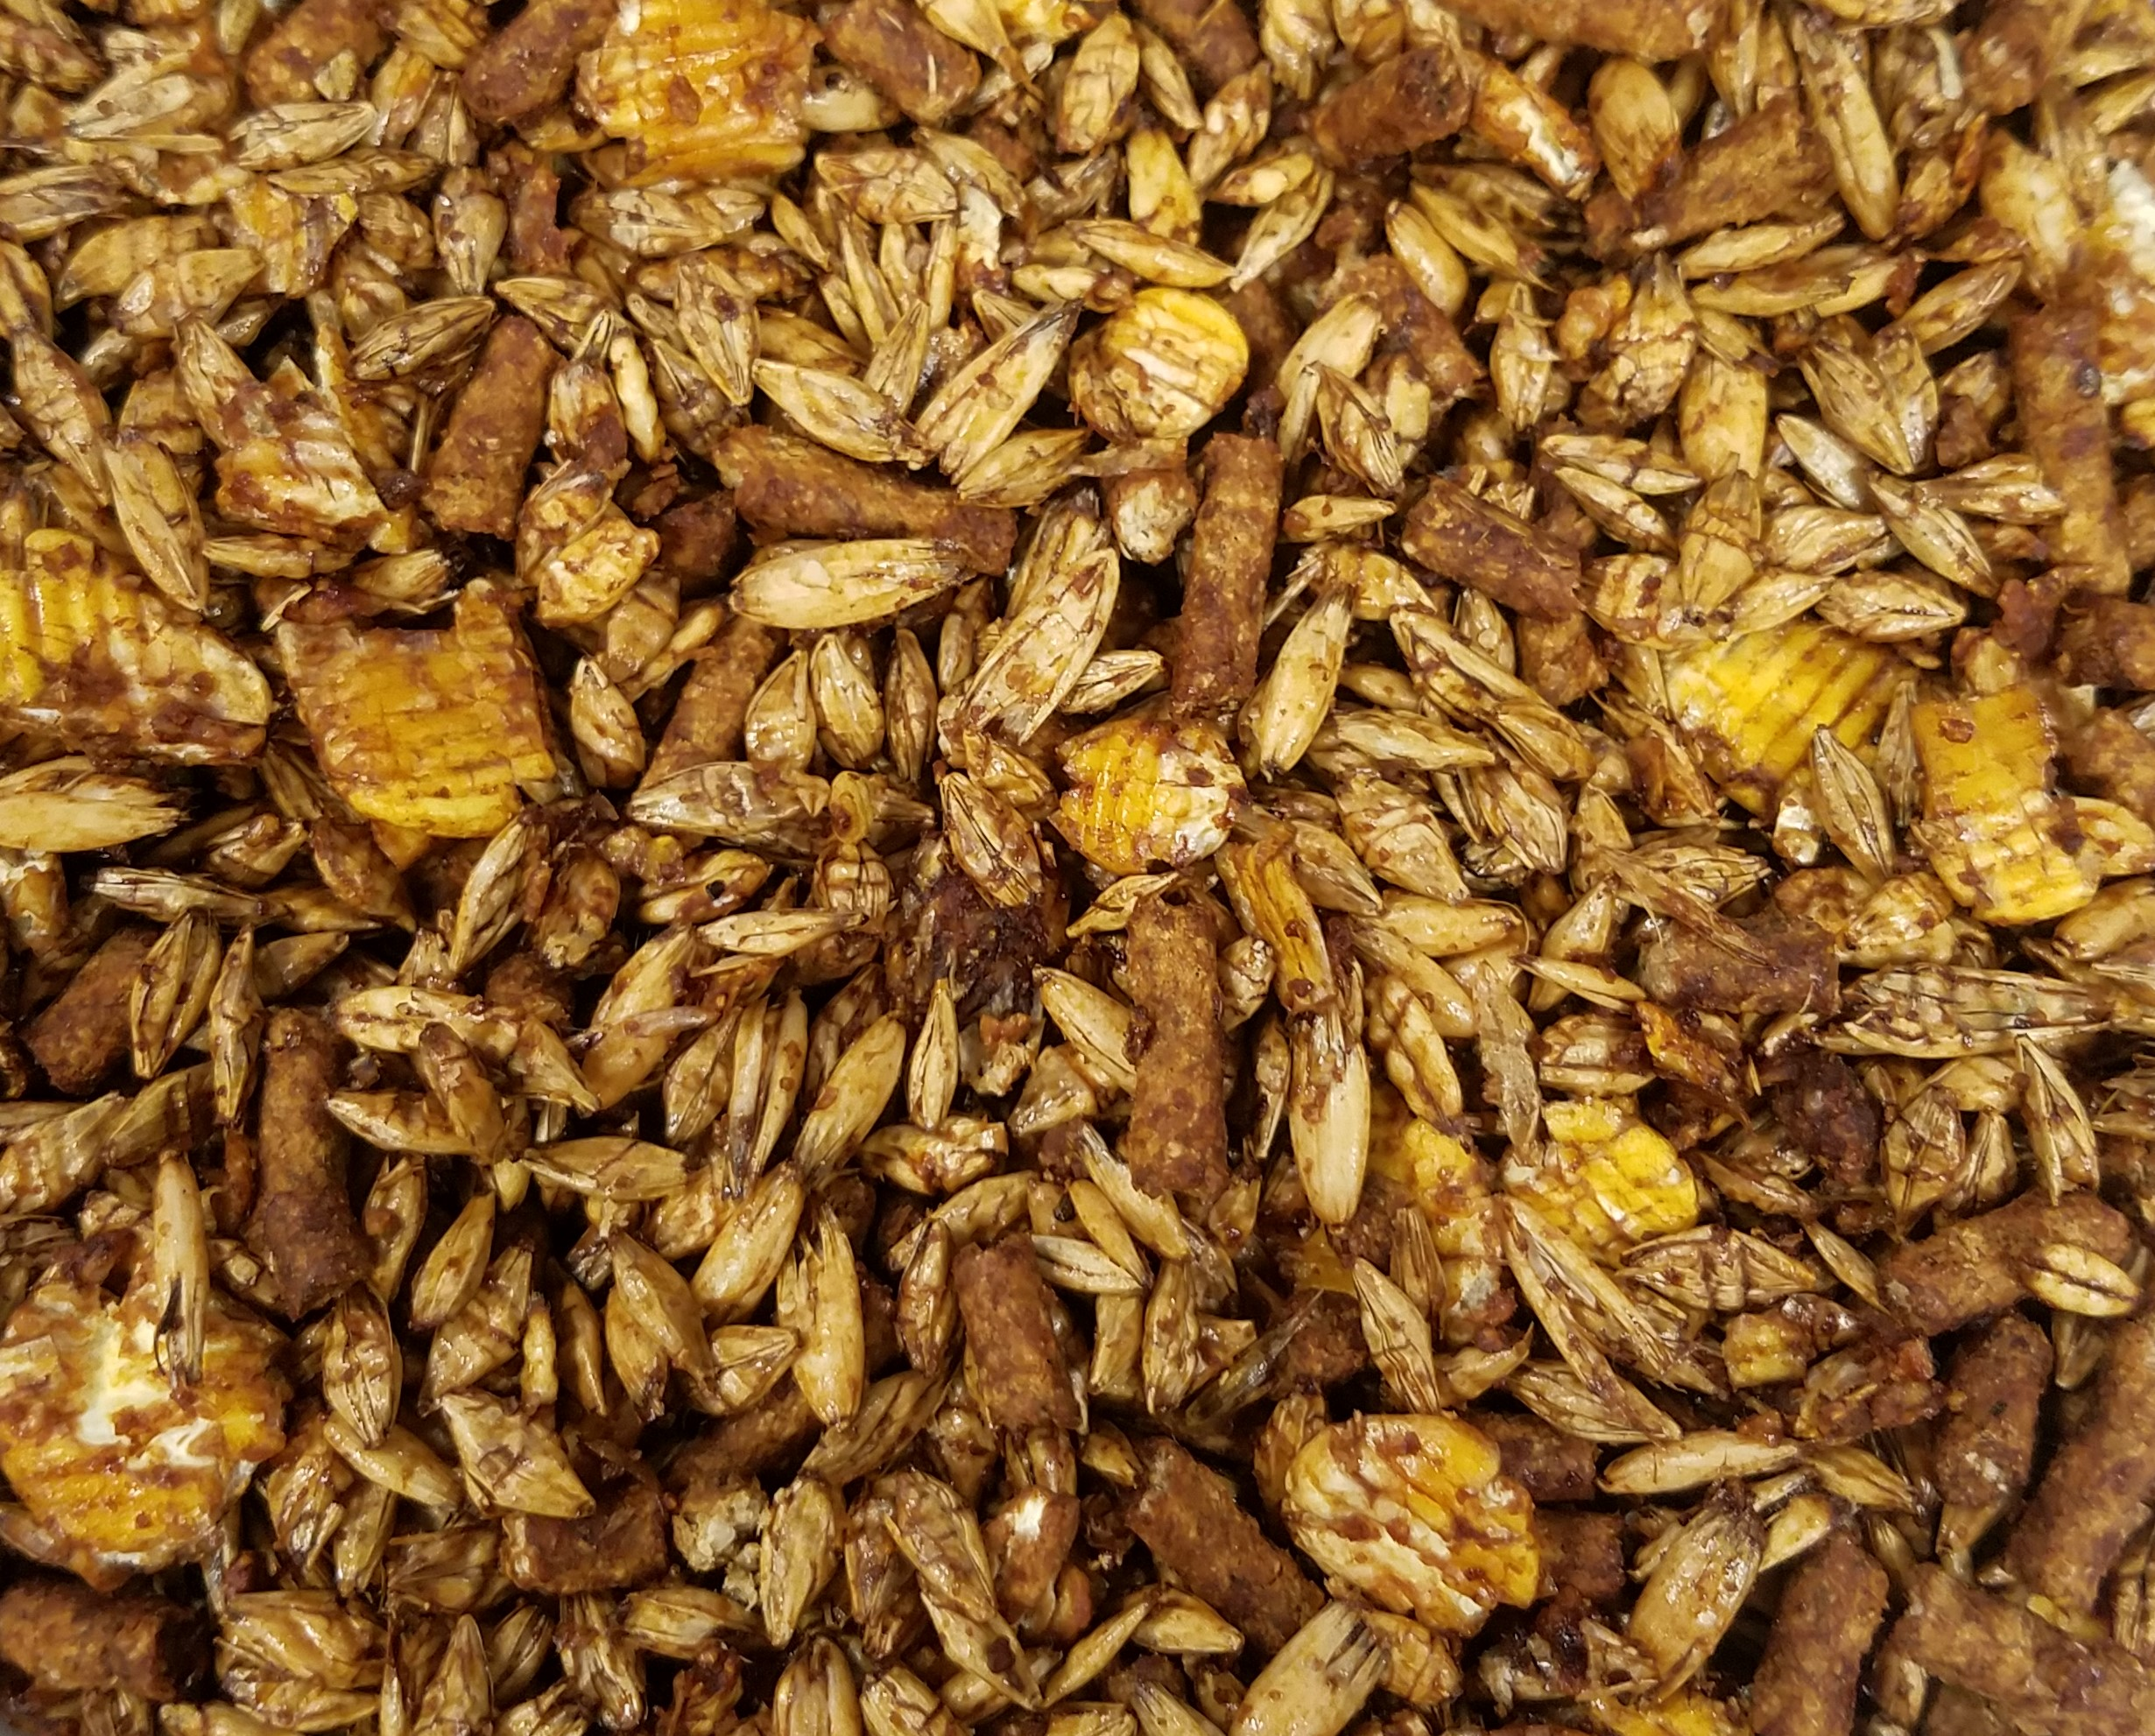 Textured Horse Feeds - Maryland - Farmers Cooperative Association, Inc